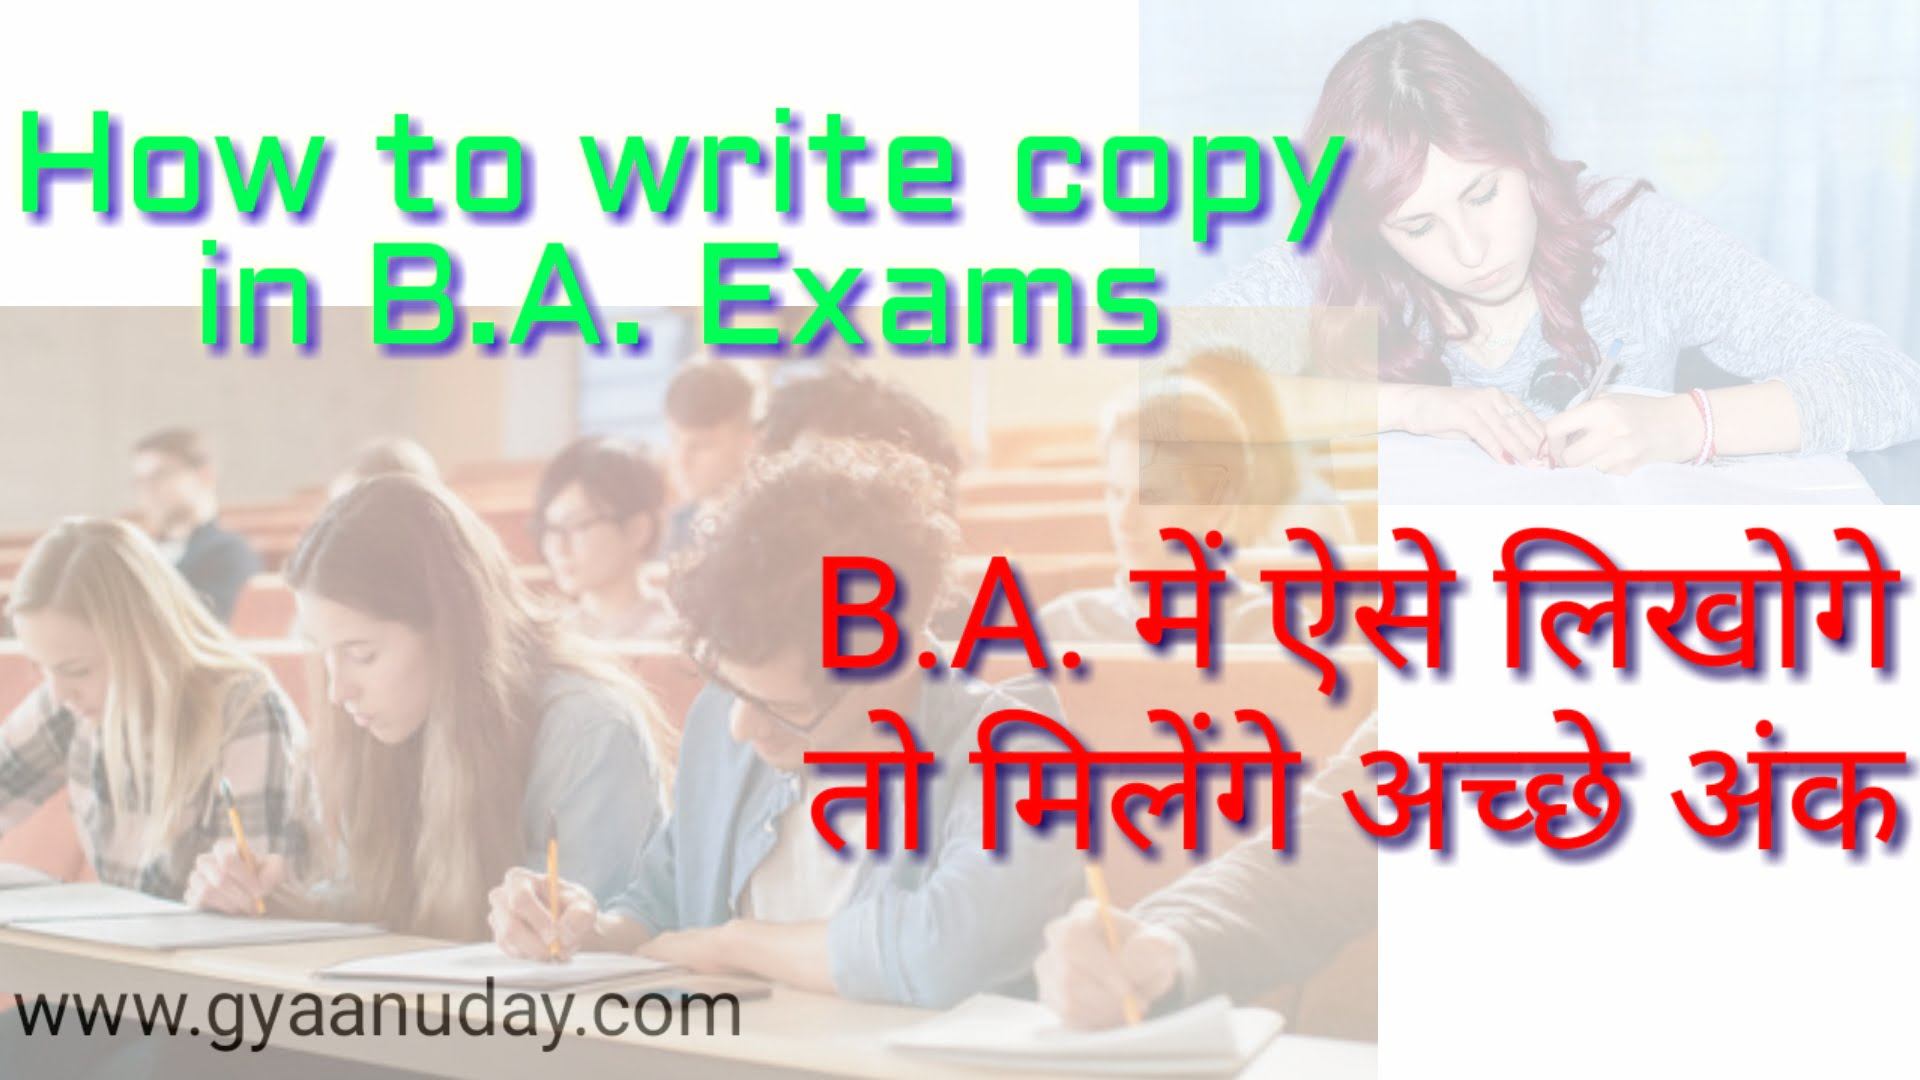 How to write paper in B.A. Exams 2020